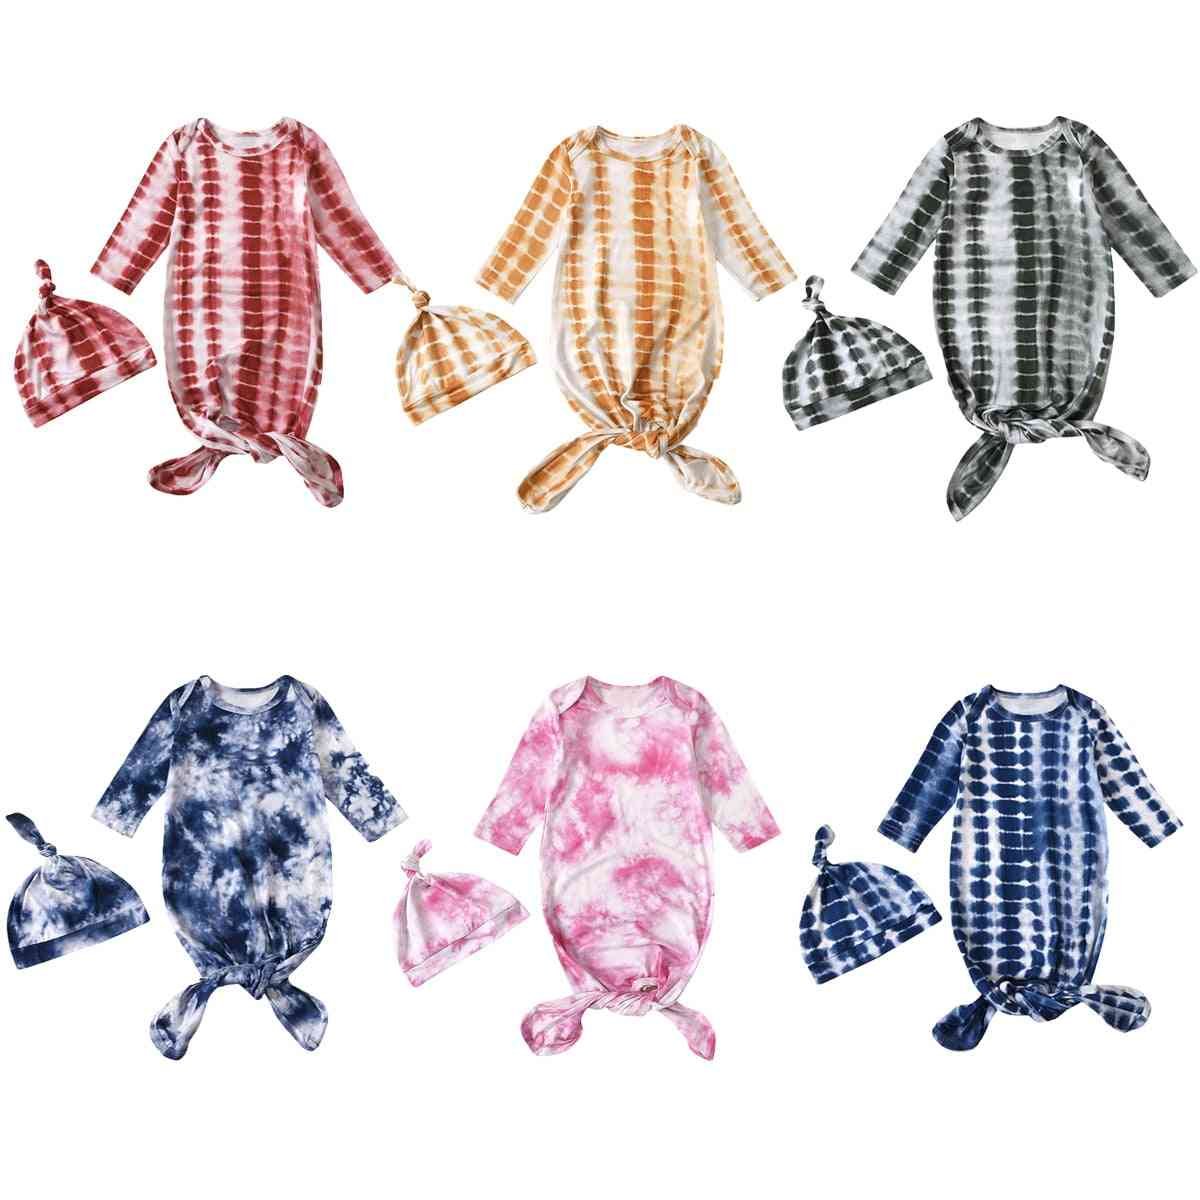 Long Sleeve, Tie And Die Pattern-printed Sleeping Wraps With Hats For Babies